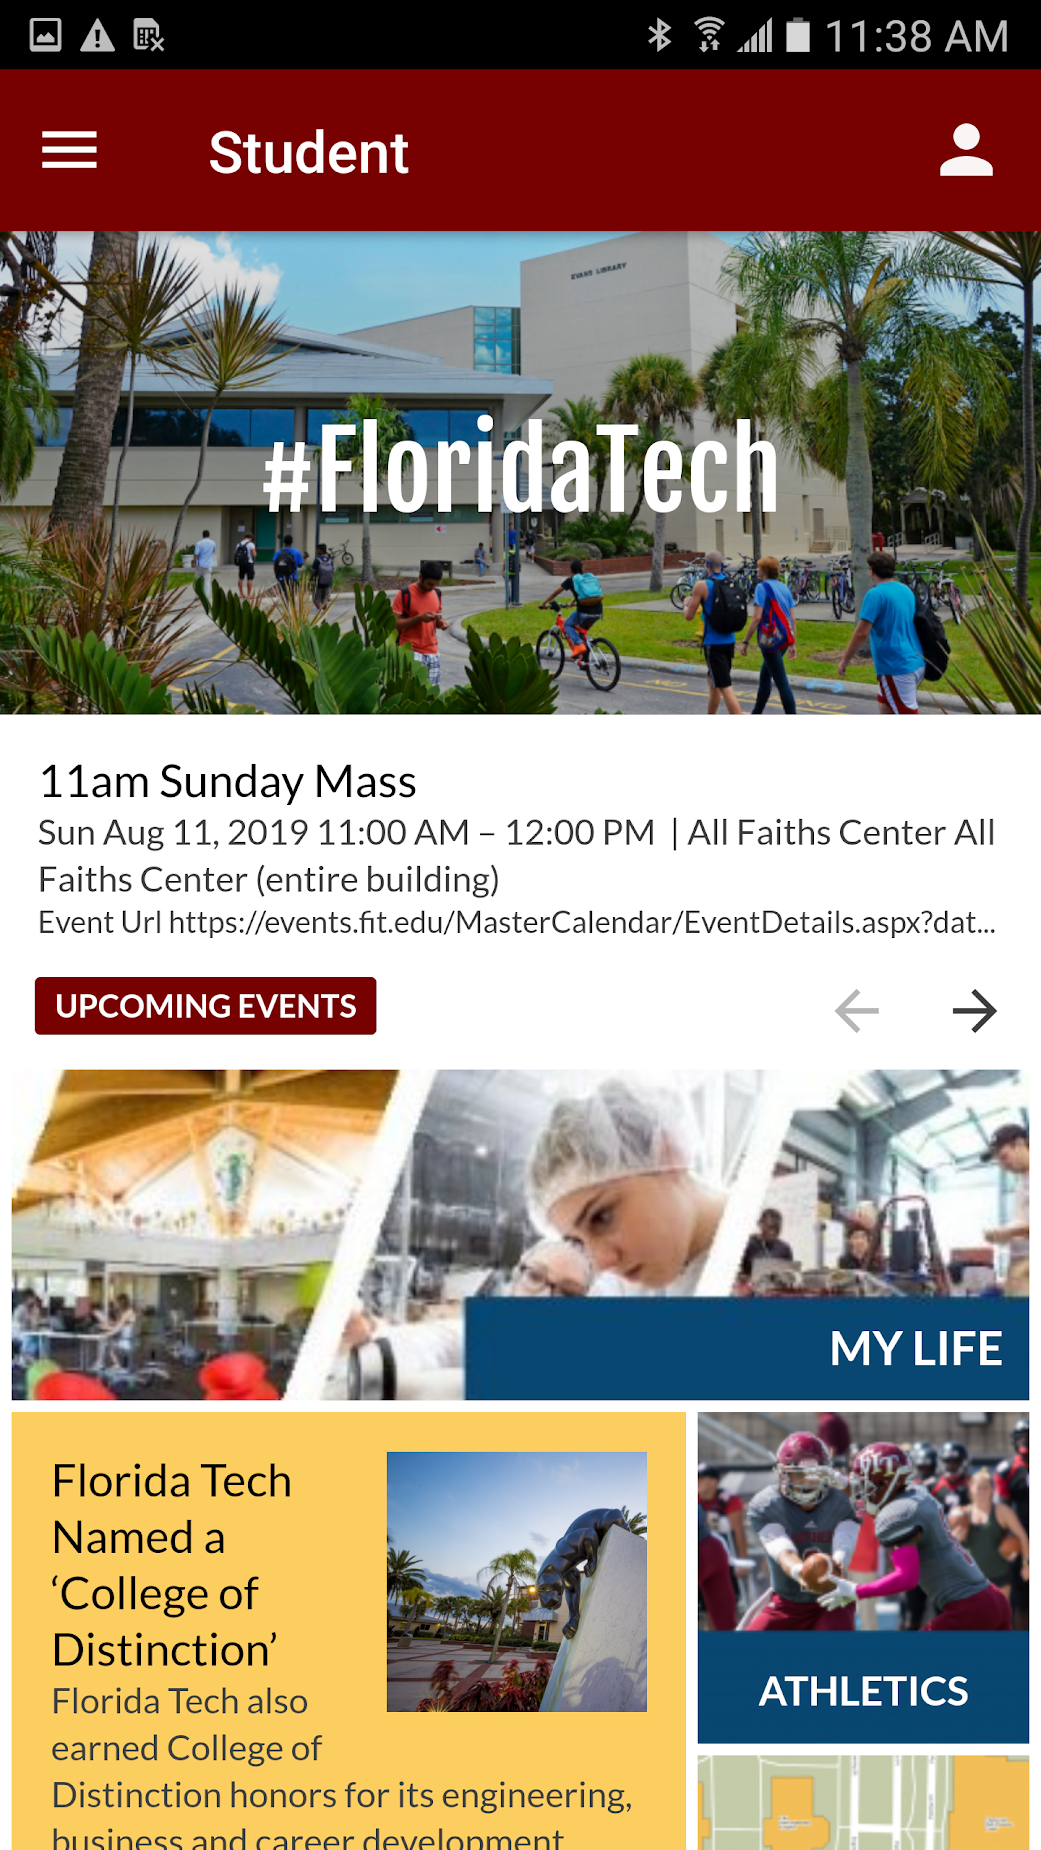 Student Home Screen on Florida Tech Mobile